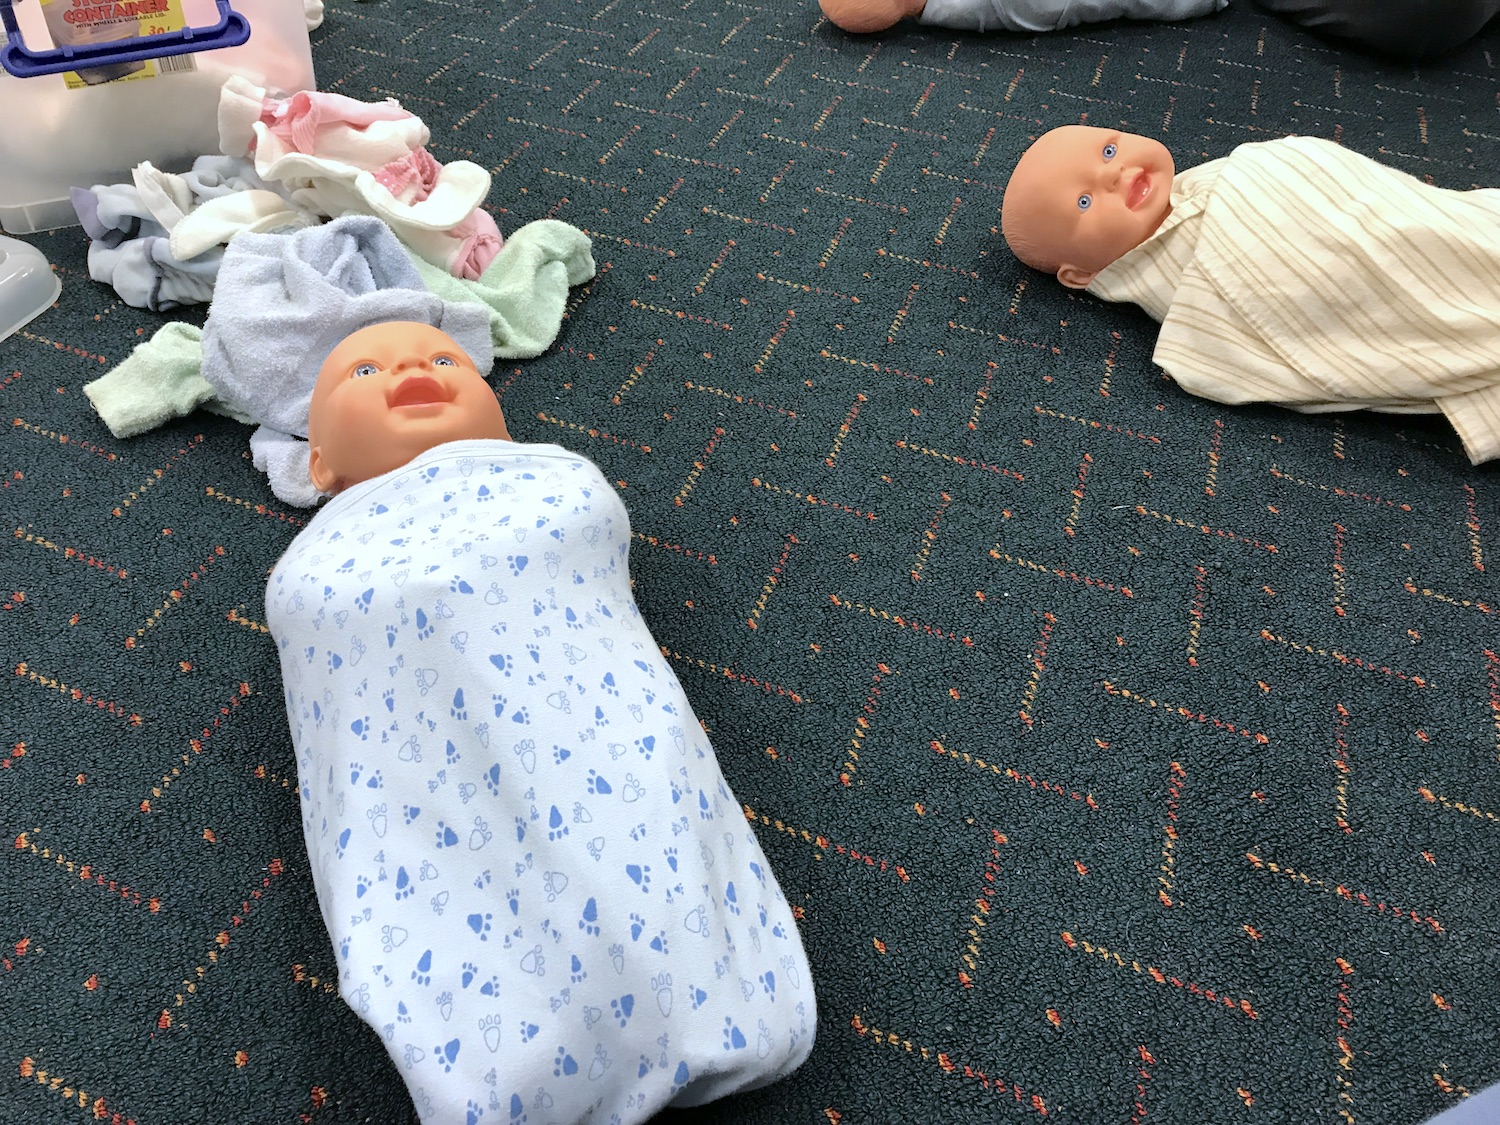 Masters in swaddling... baby dolls!